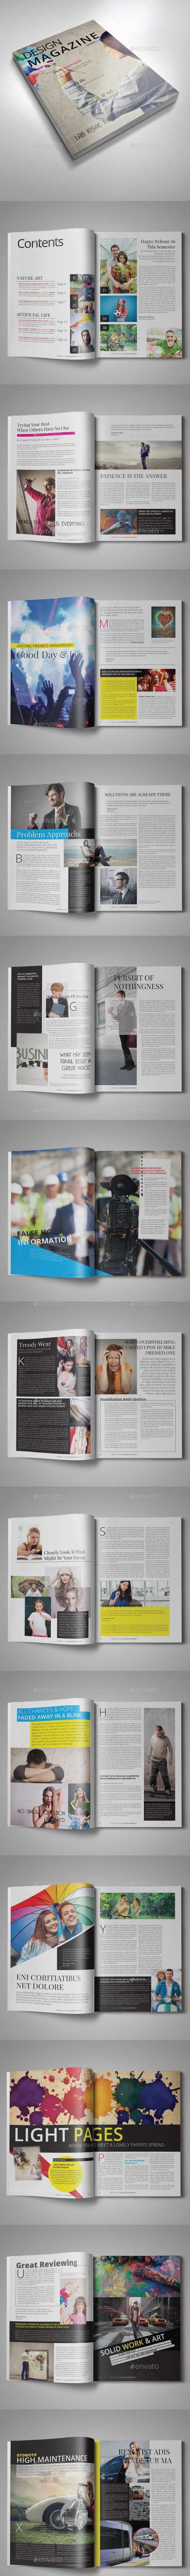 Design Magazine Template | 34 pages - Magazines Print Templates